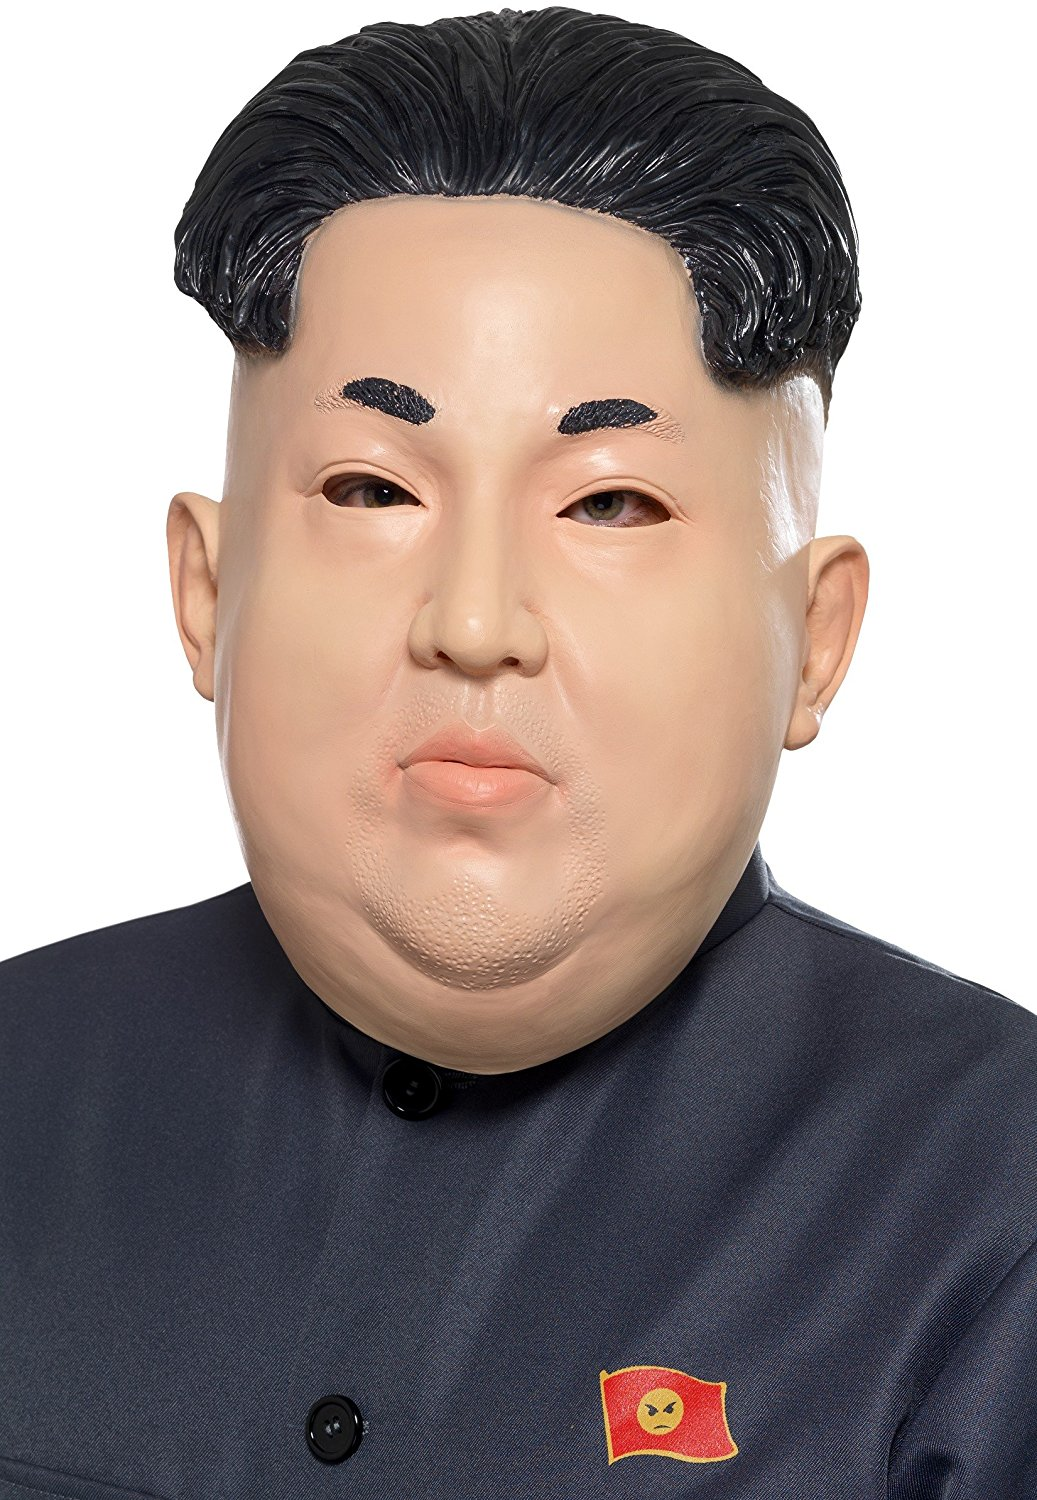 Korean dictator mask 40322